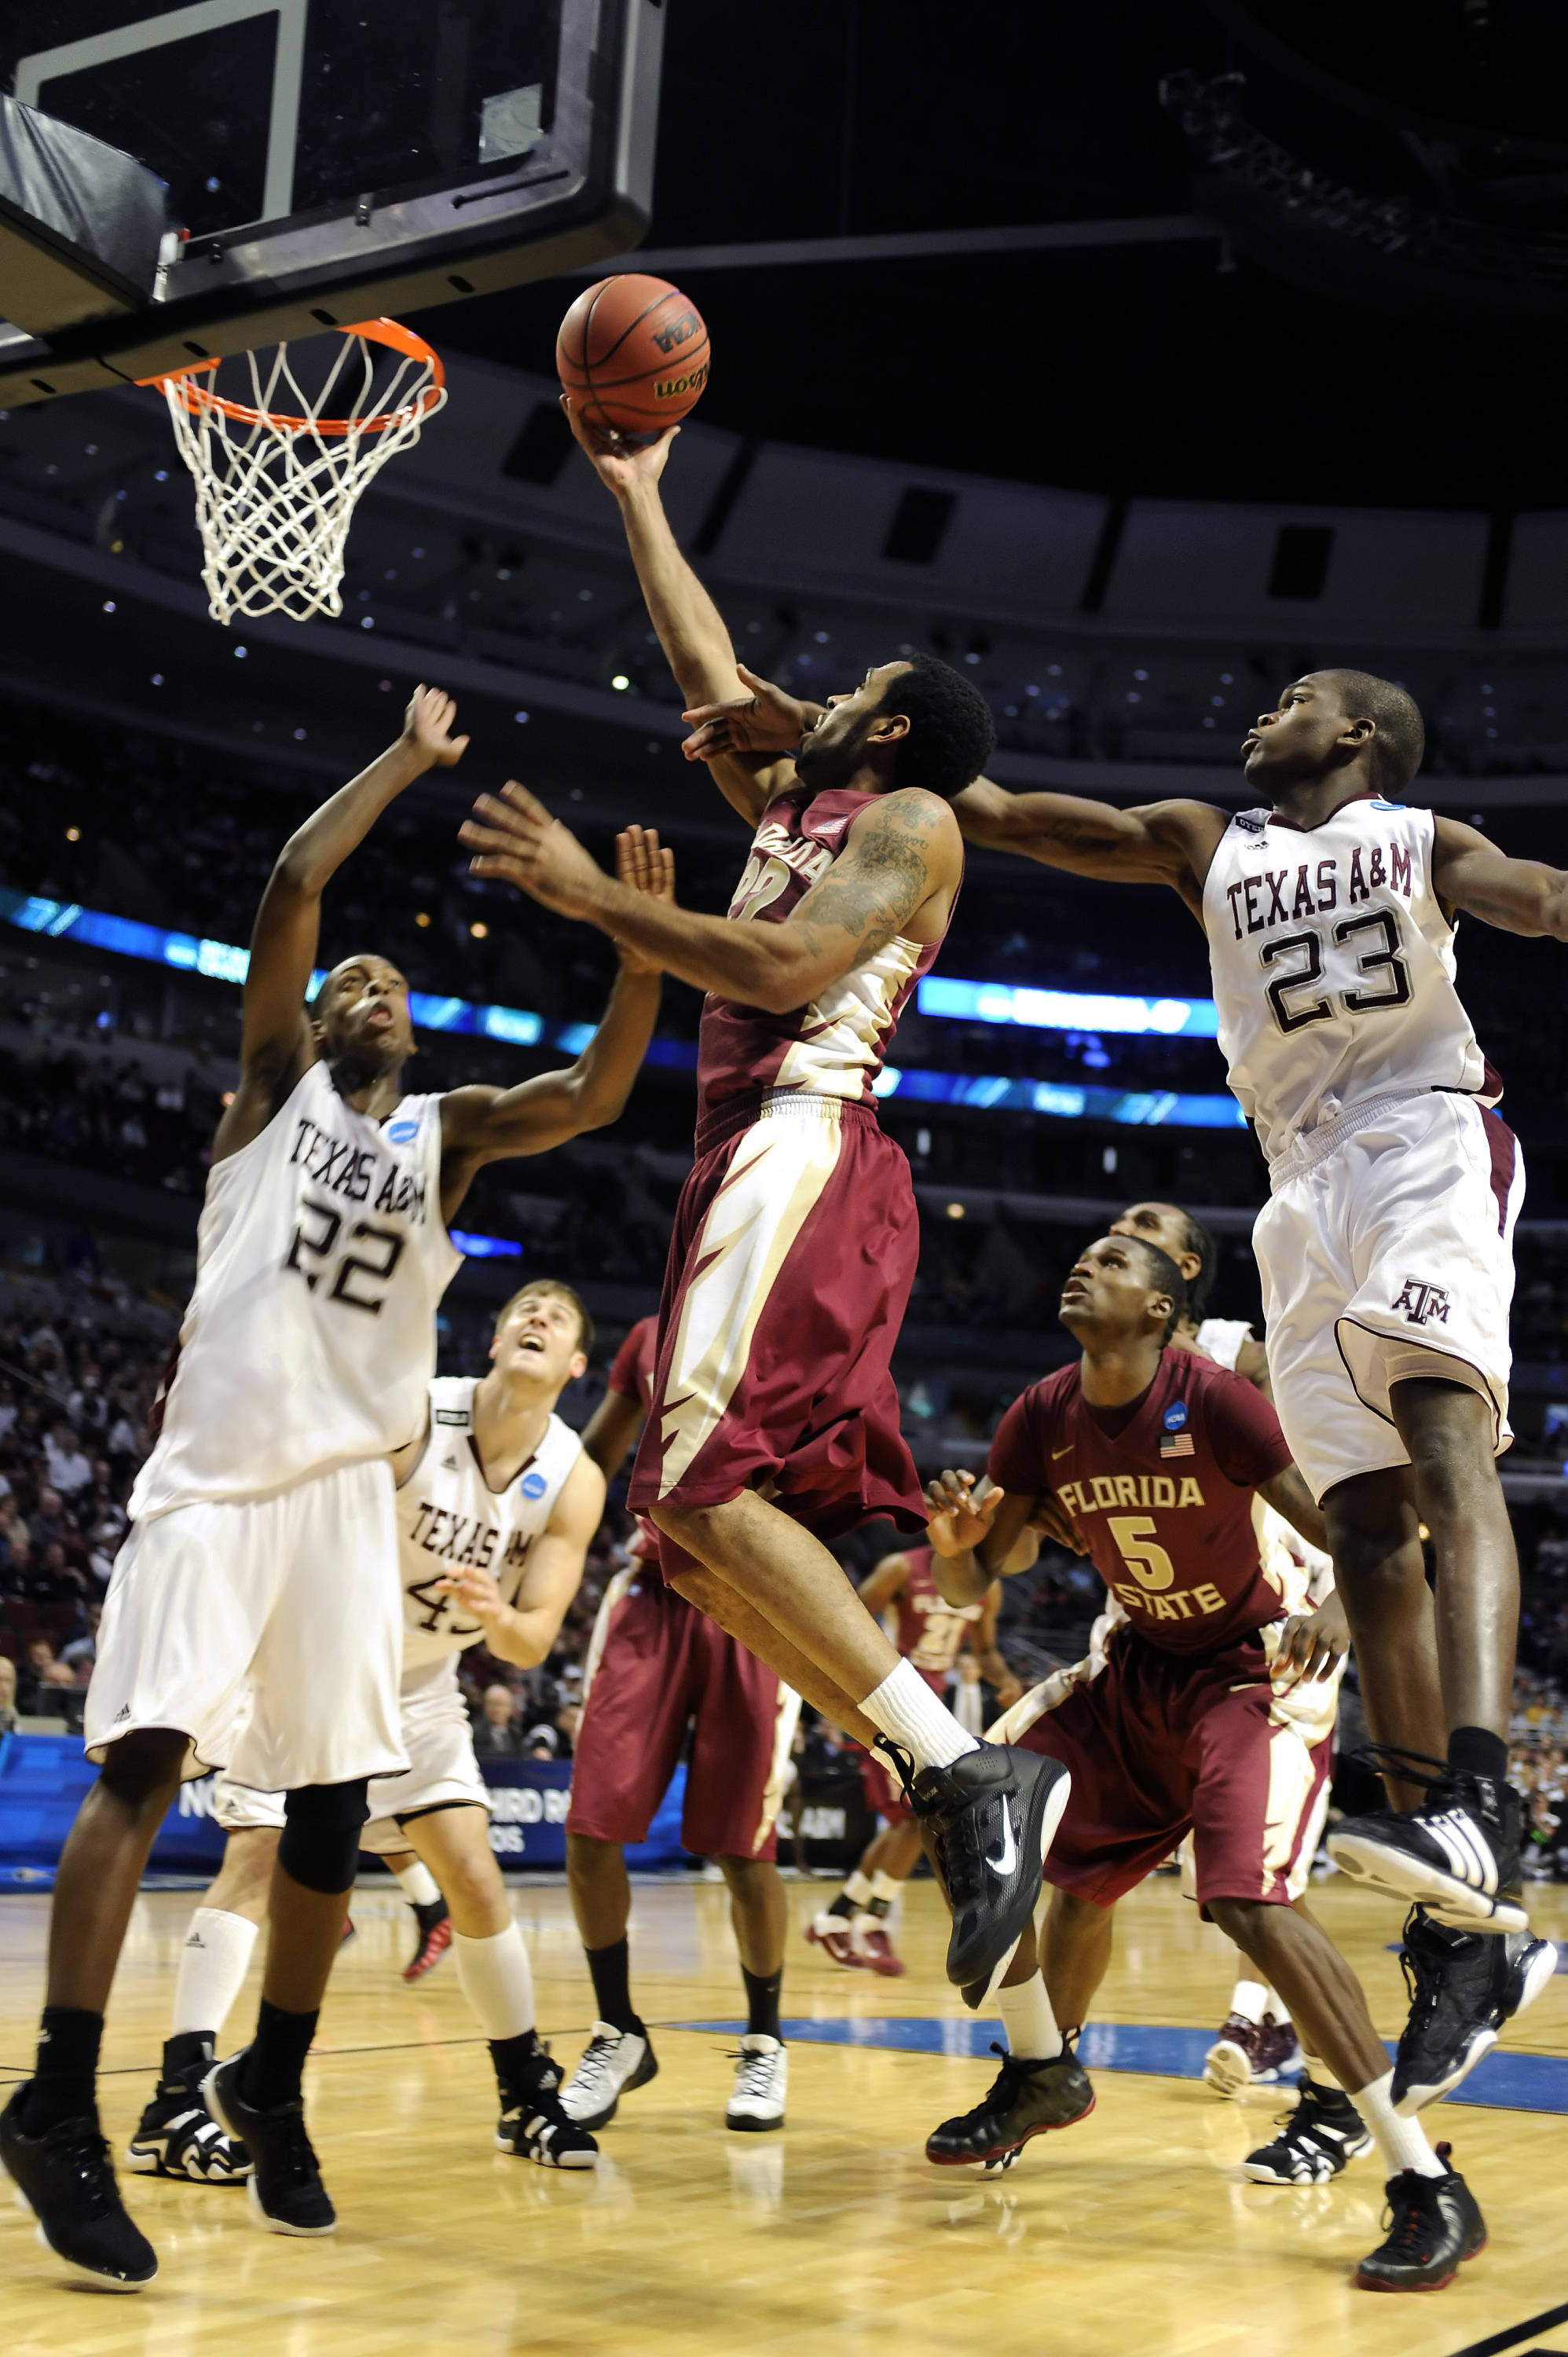 Derwin Kitchen goes up for a layup against Texas A&M